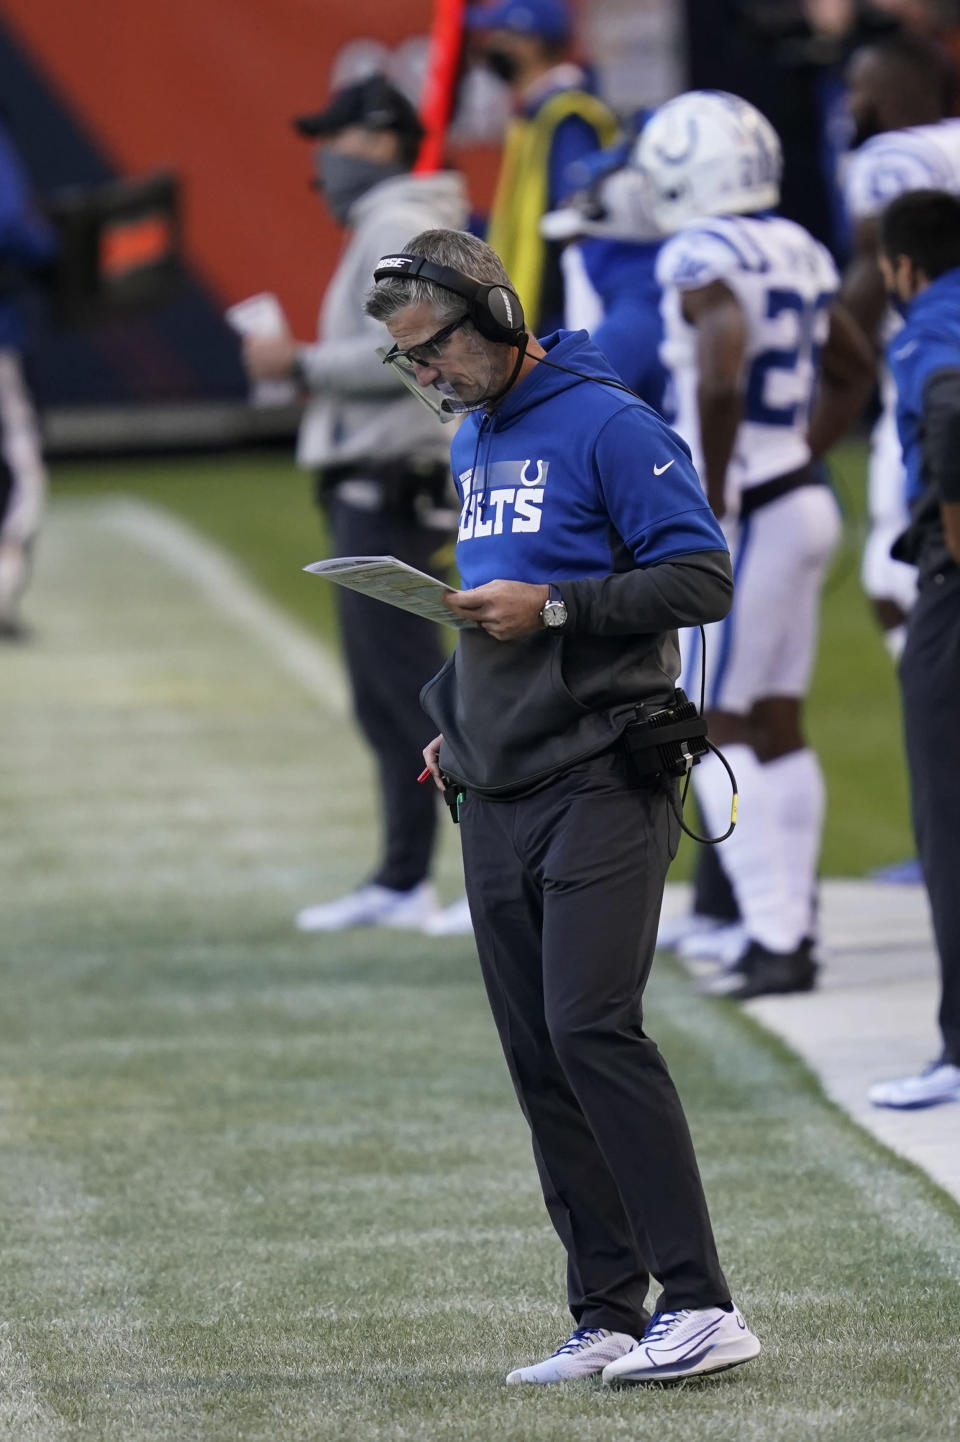 Indianapolis Colts coach Frank Reich looks at his play chart during the second half of the team's NFL football game against the Chicago Bears, Sunday, Oct. 4, 2020, in Chicago. (AP Photo/Charles Rex Arbogast)